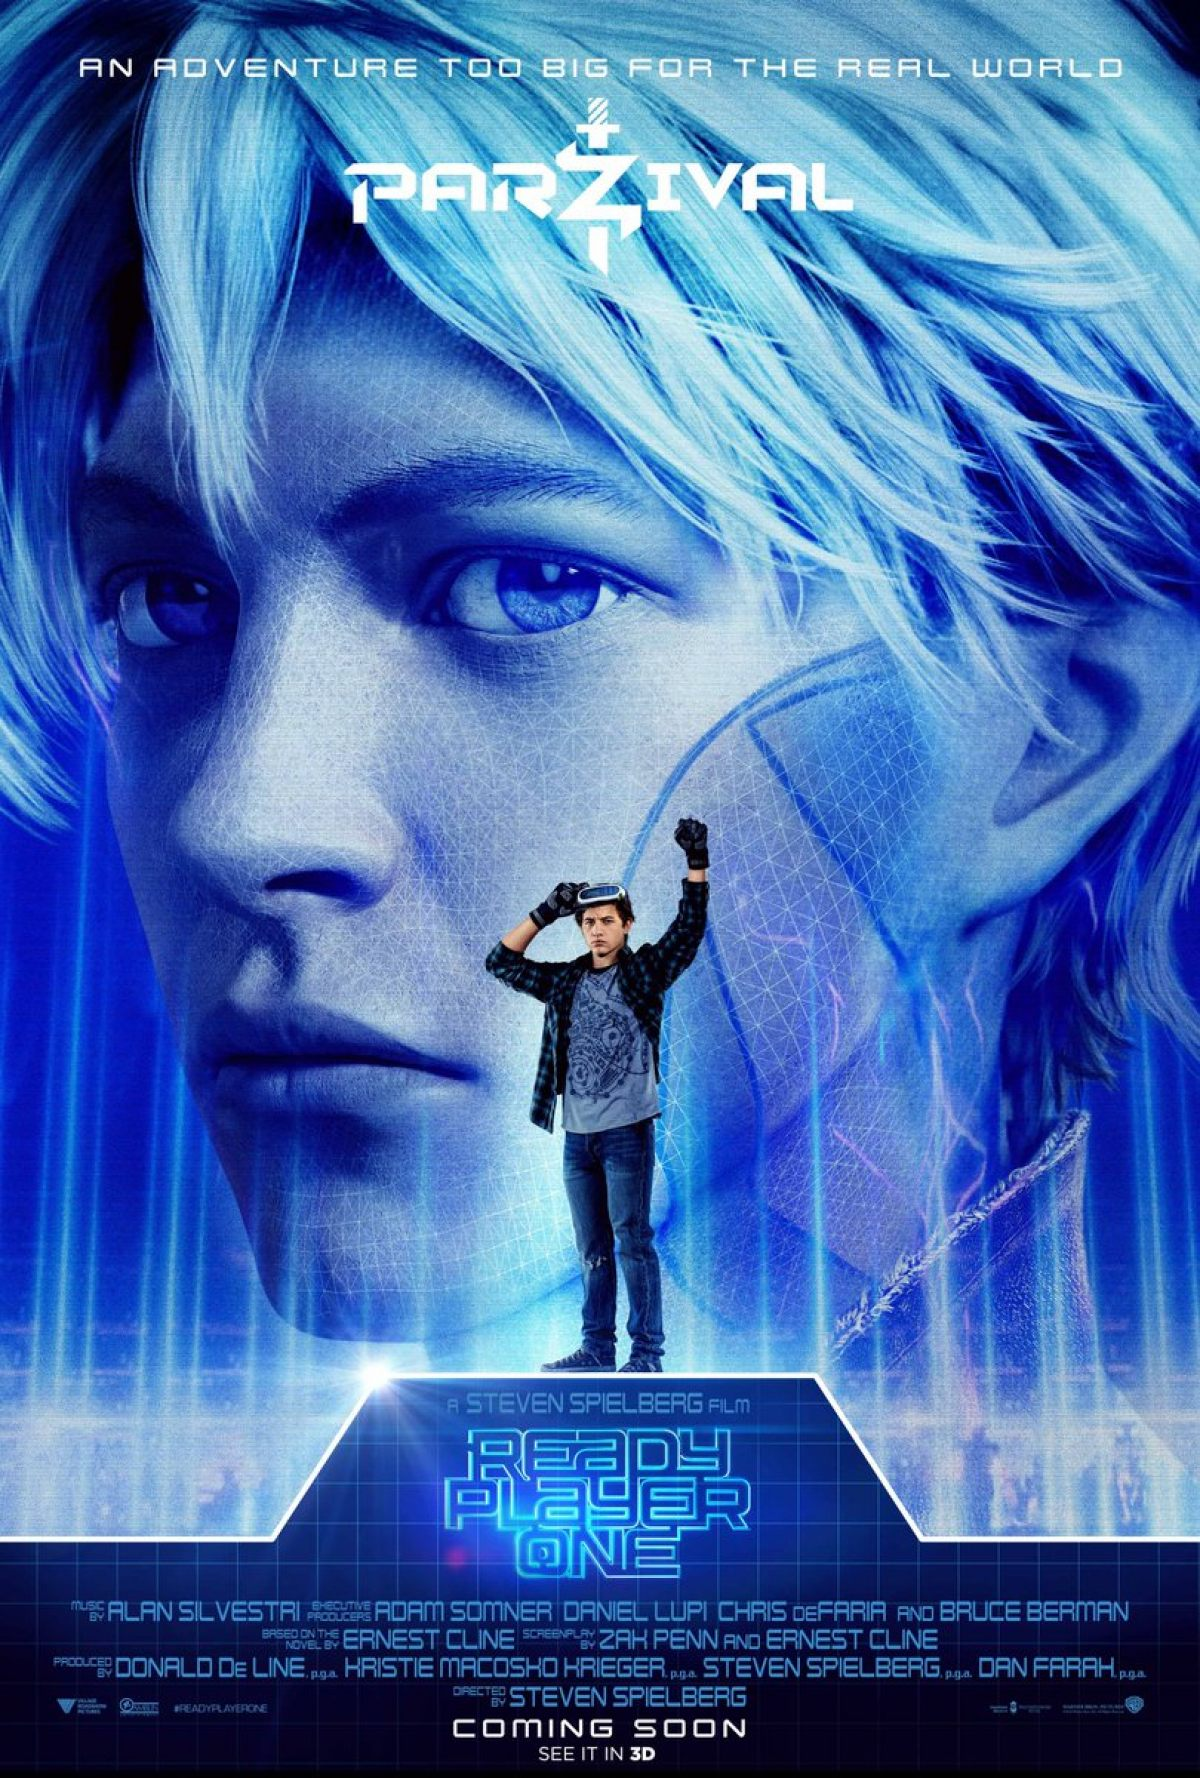 These READY PLAYER ONE Character Posters Are Colorfully